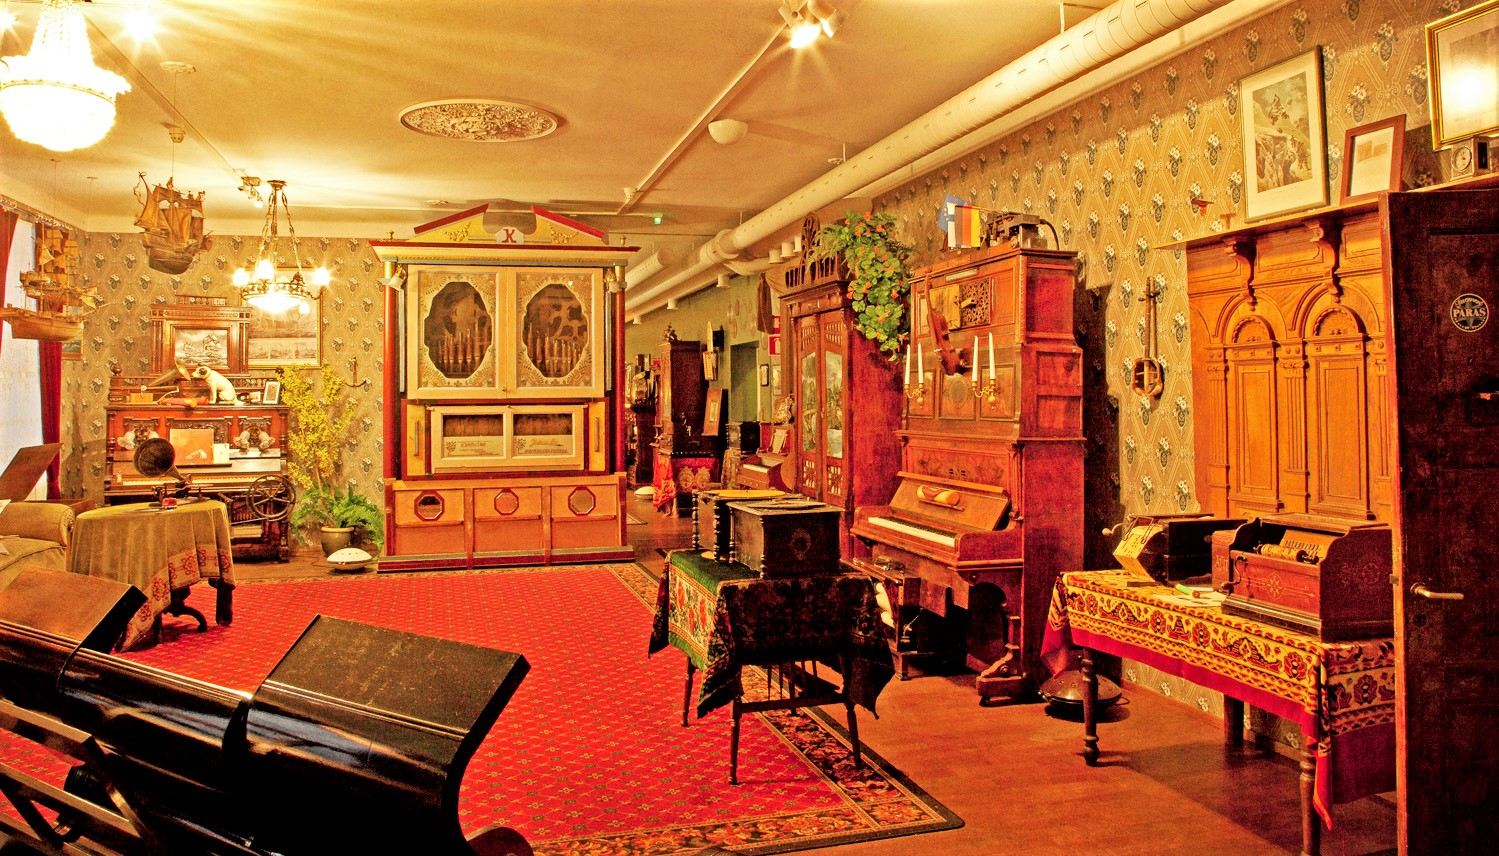 The Mechanical Music Museum